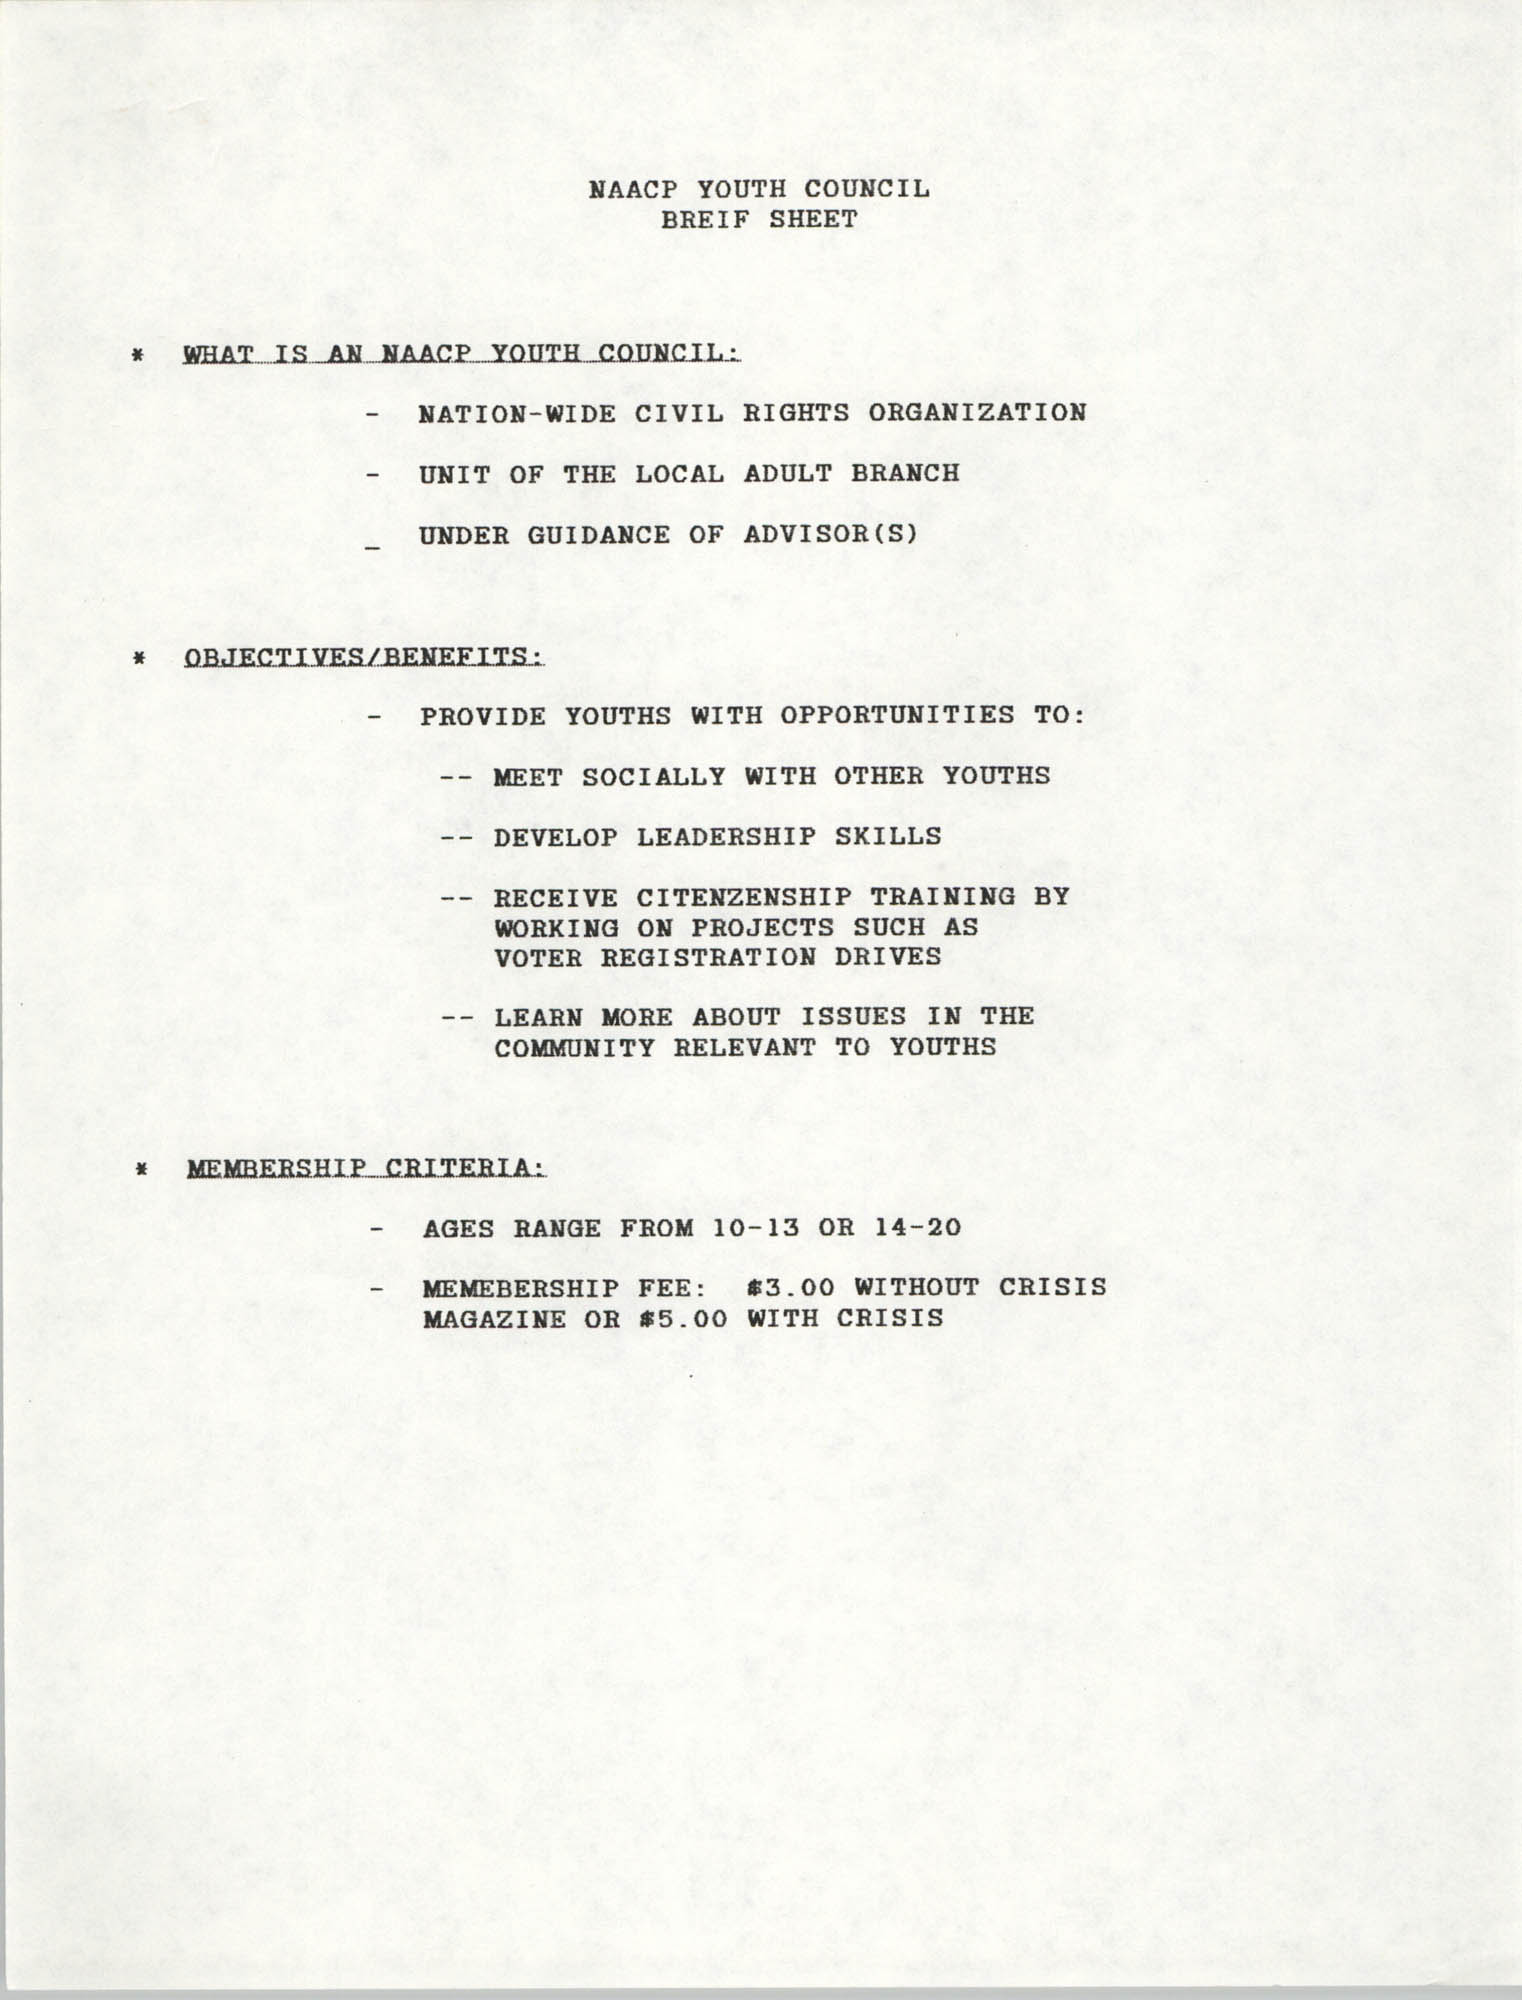 Brief Sheet, NAACP Youth Council